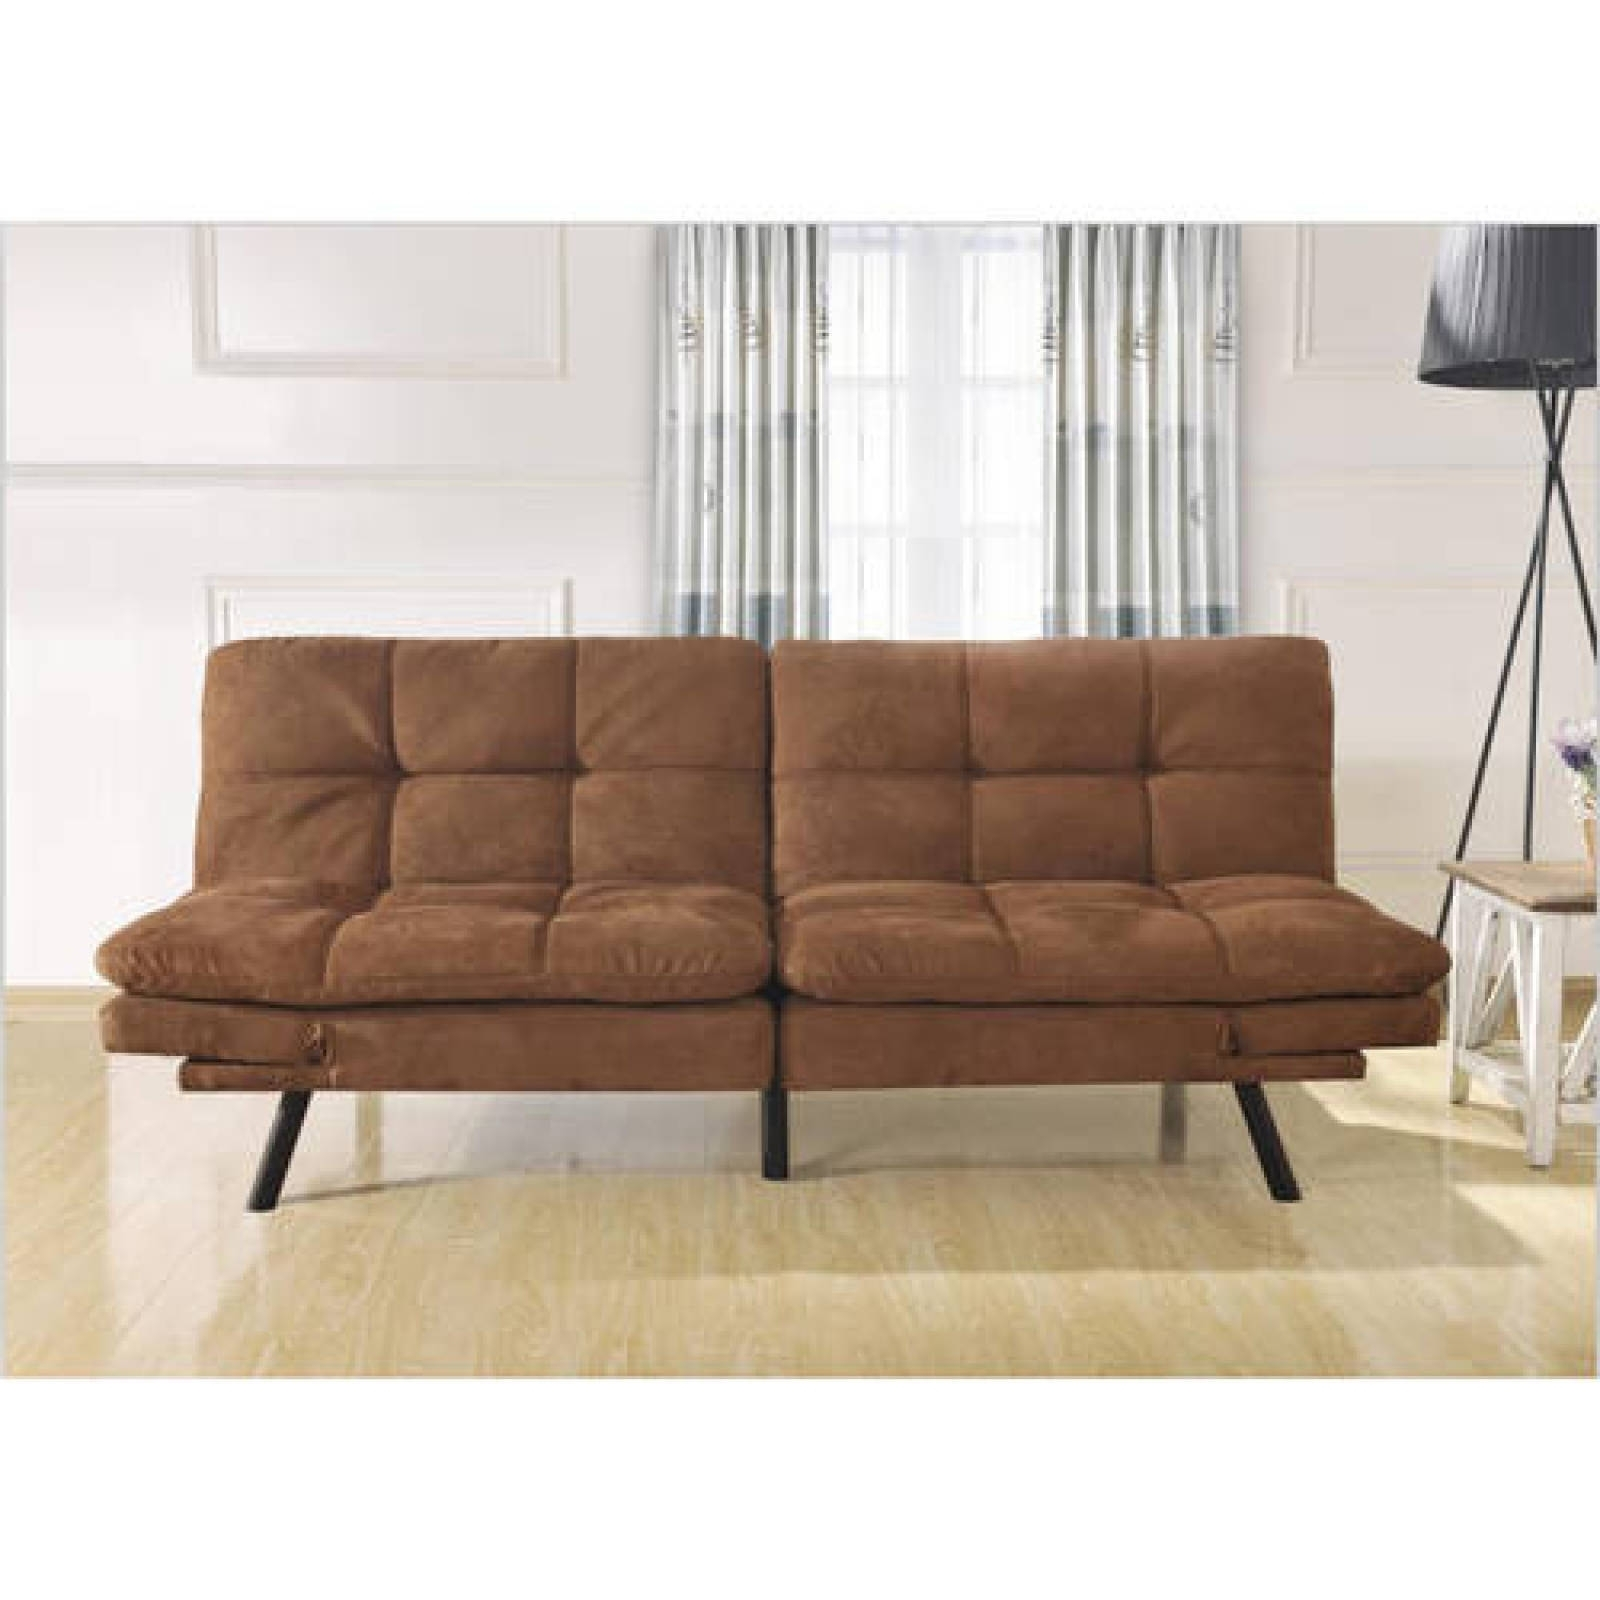 Preferred Convertible Sofa Bed Couch Futon Chaises Chair Seat Memory Foam Throughout Futon Chaises (View 15 of 15)